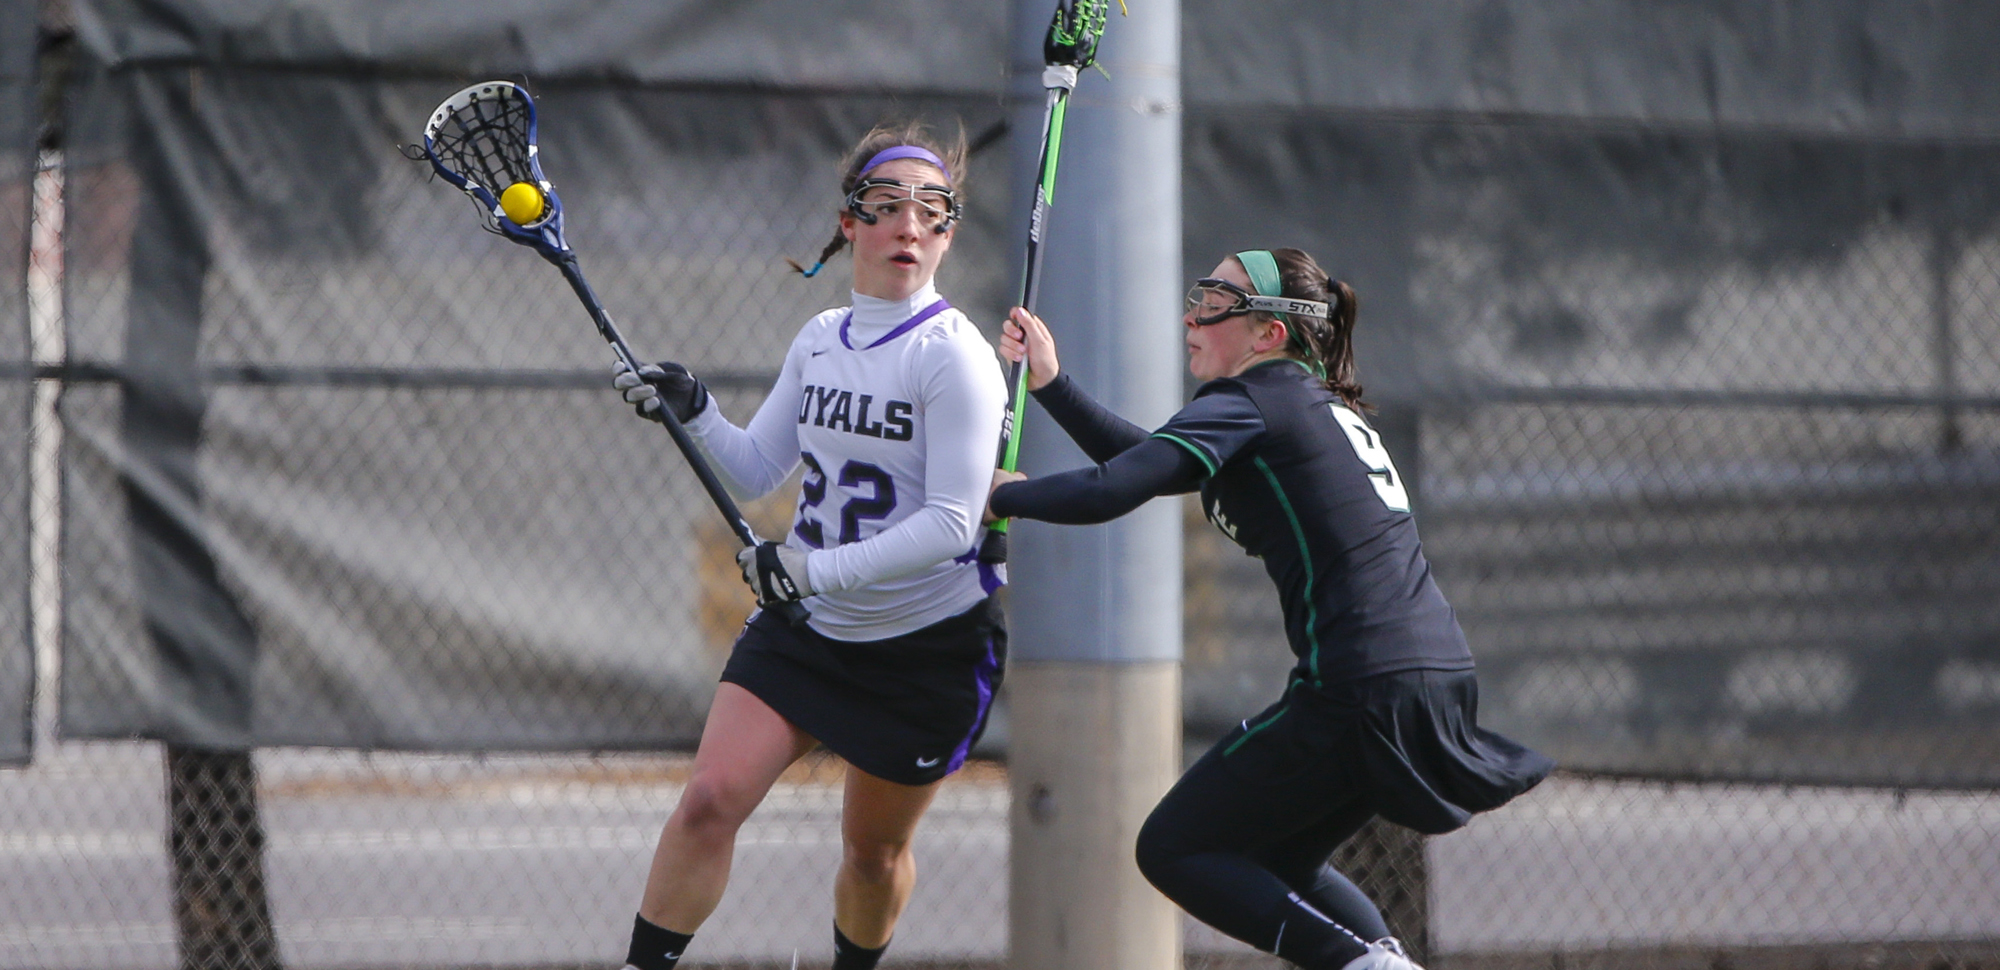 Senior Meghan Kerr scored four goals in the first half and finished with six tallies for the day, as the University of Scranton women's lacrosse team raced past Lebanon Valley on Sunday, 17-5.